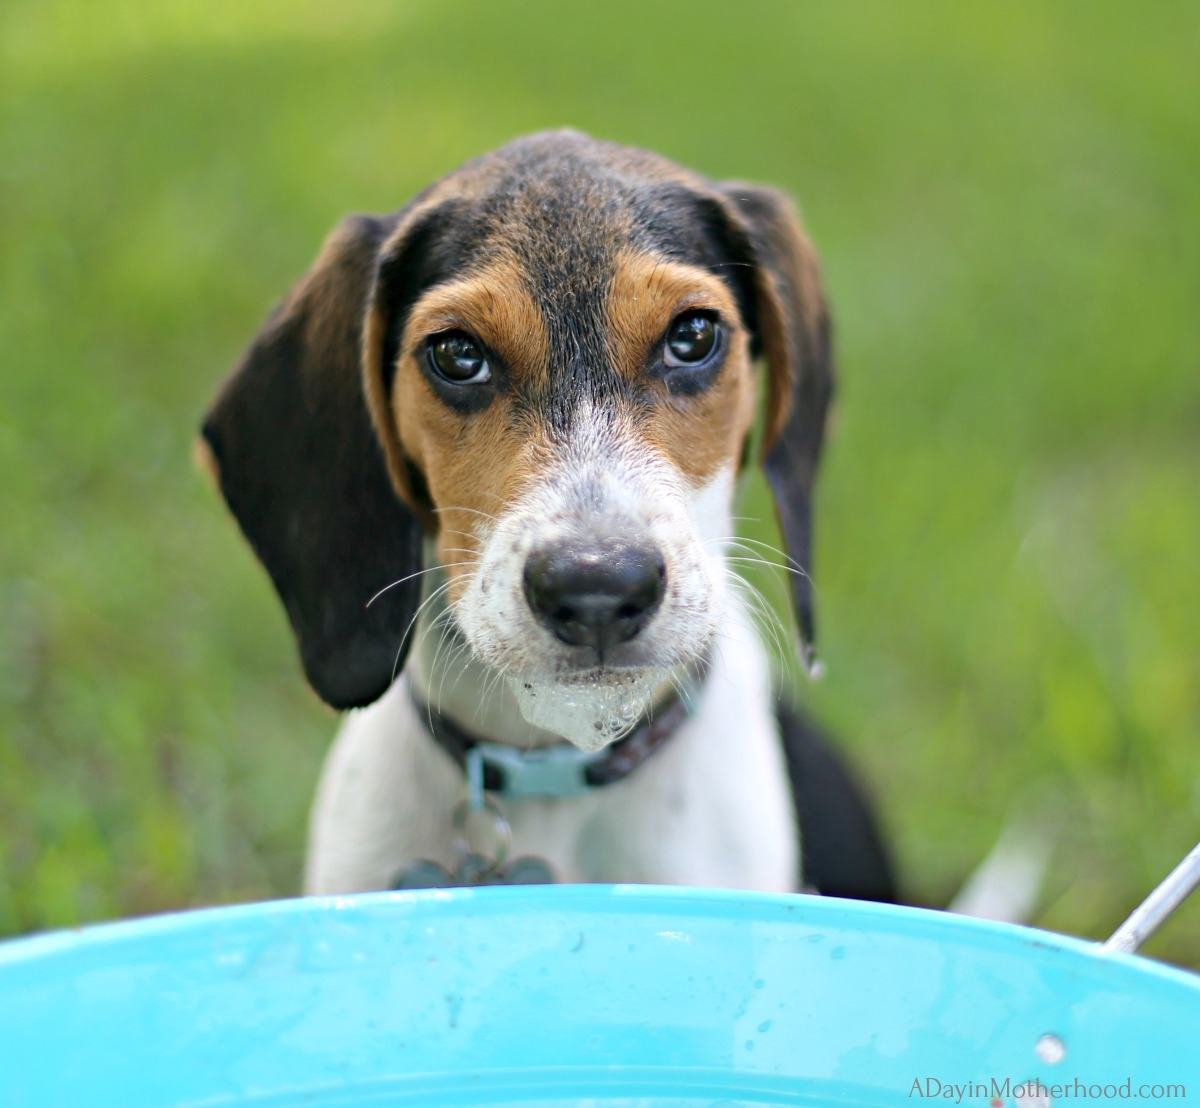 How Often Should I Bathe My Puppy? and with what product?